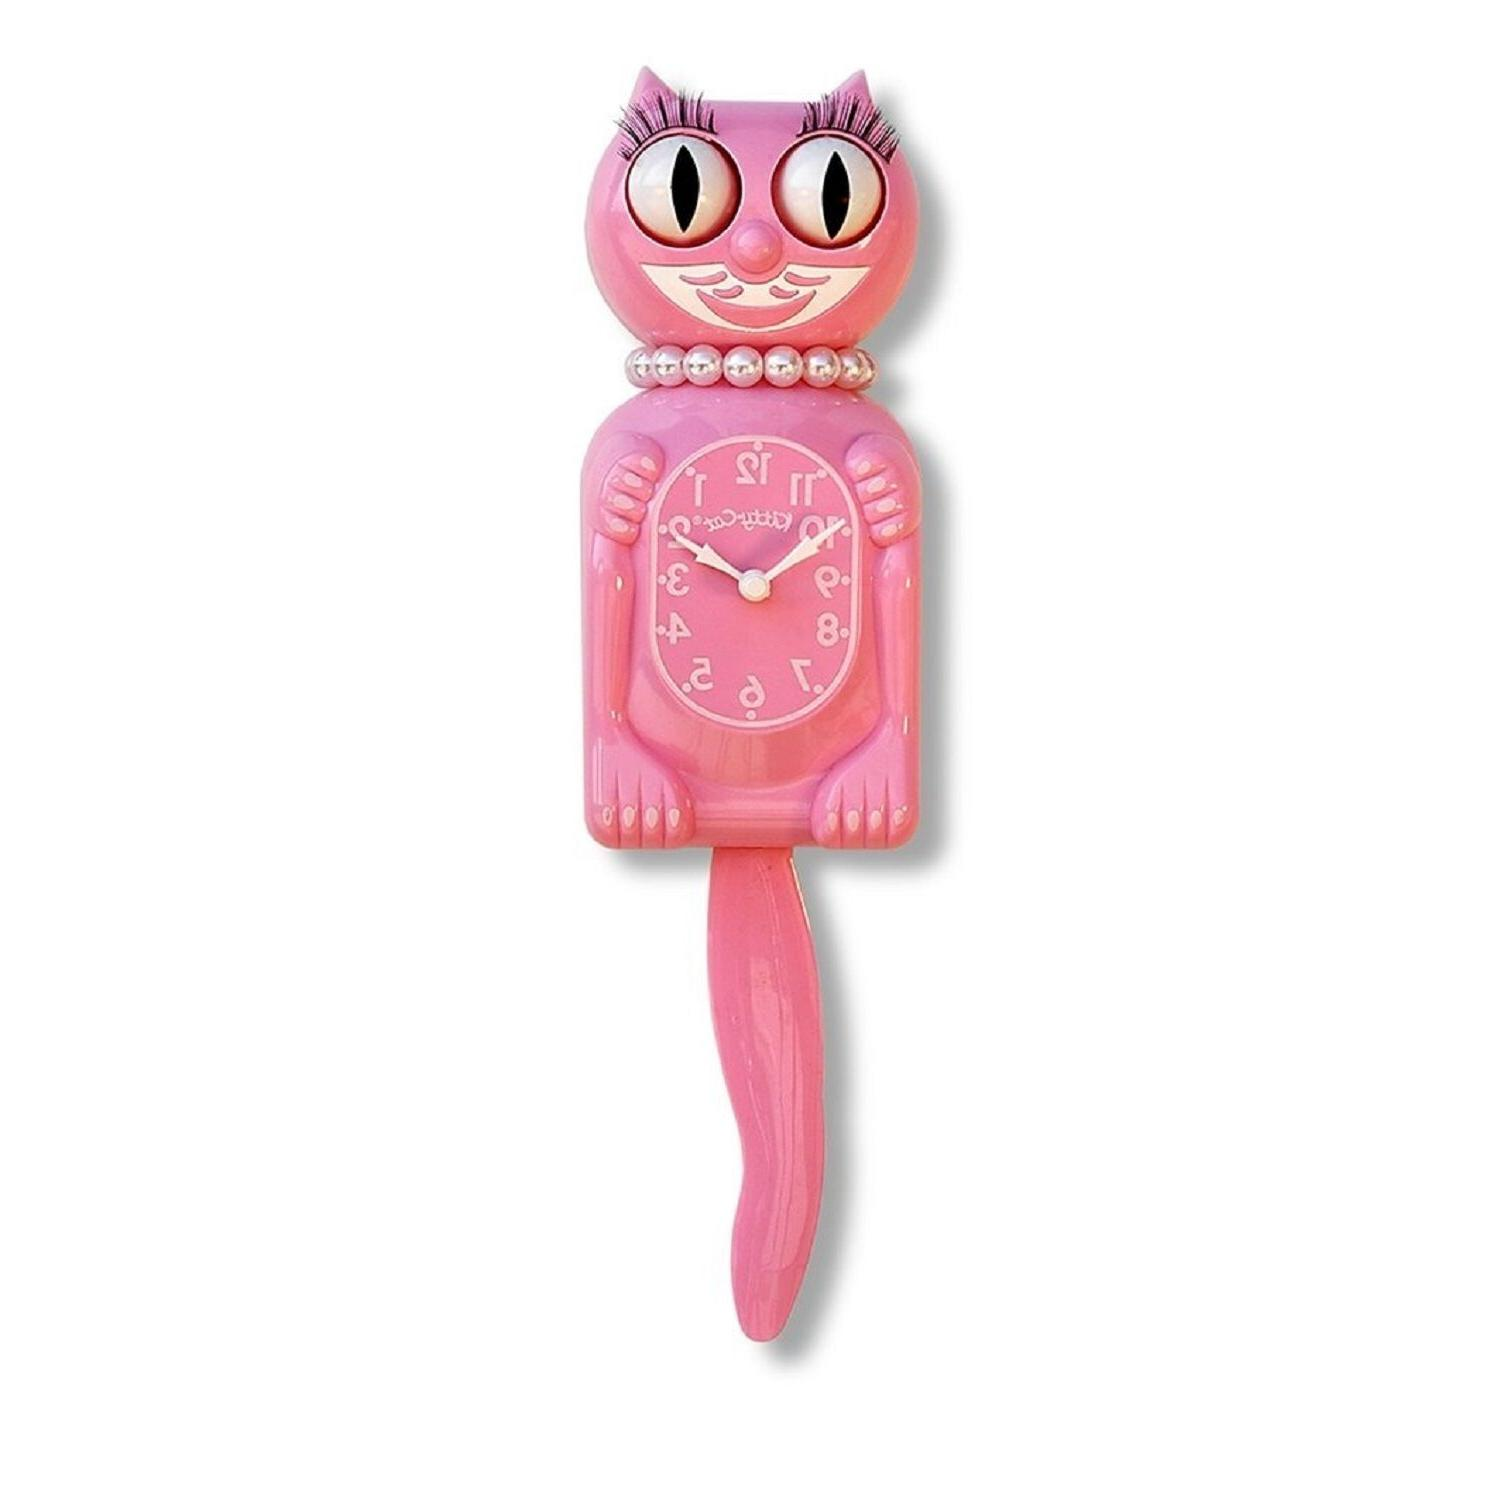 Kit-Cat Klock The Original Lady Kit-Cat, Honeysuckle Pink, 1